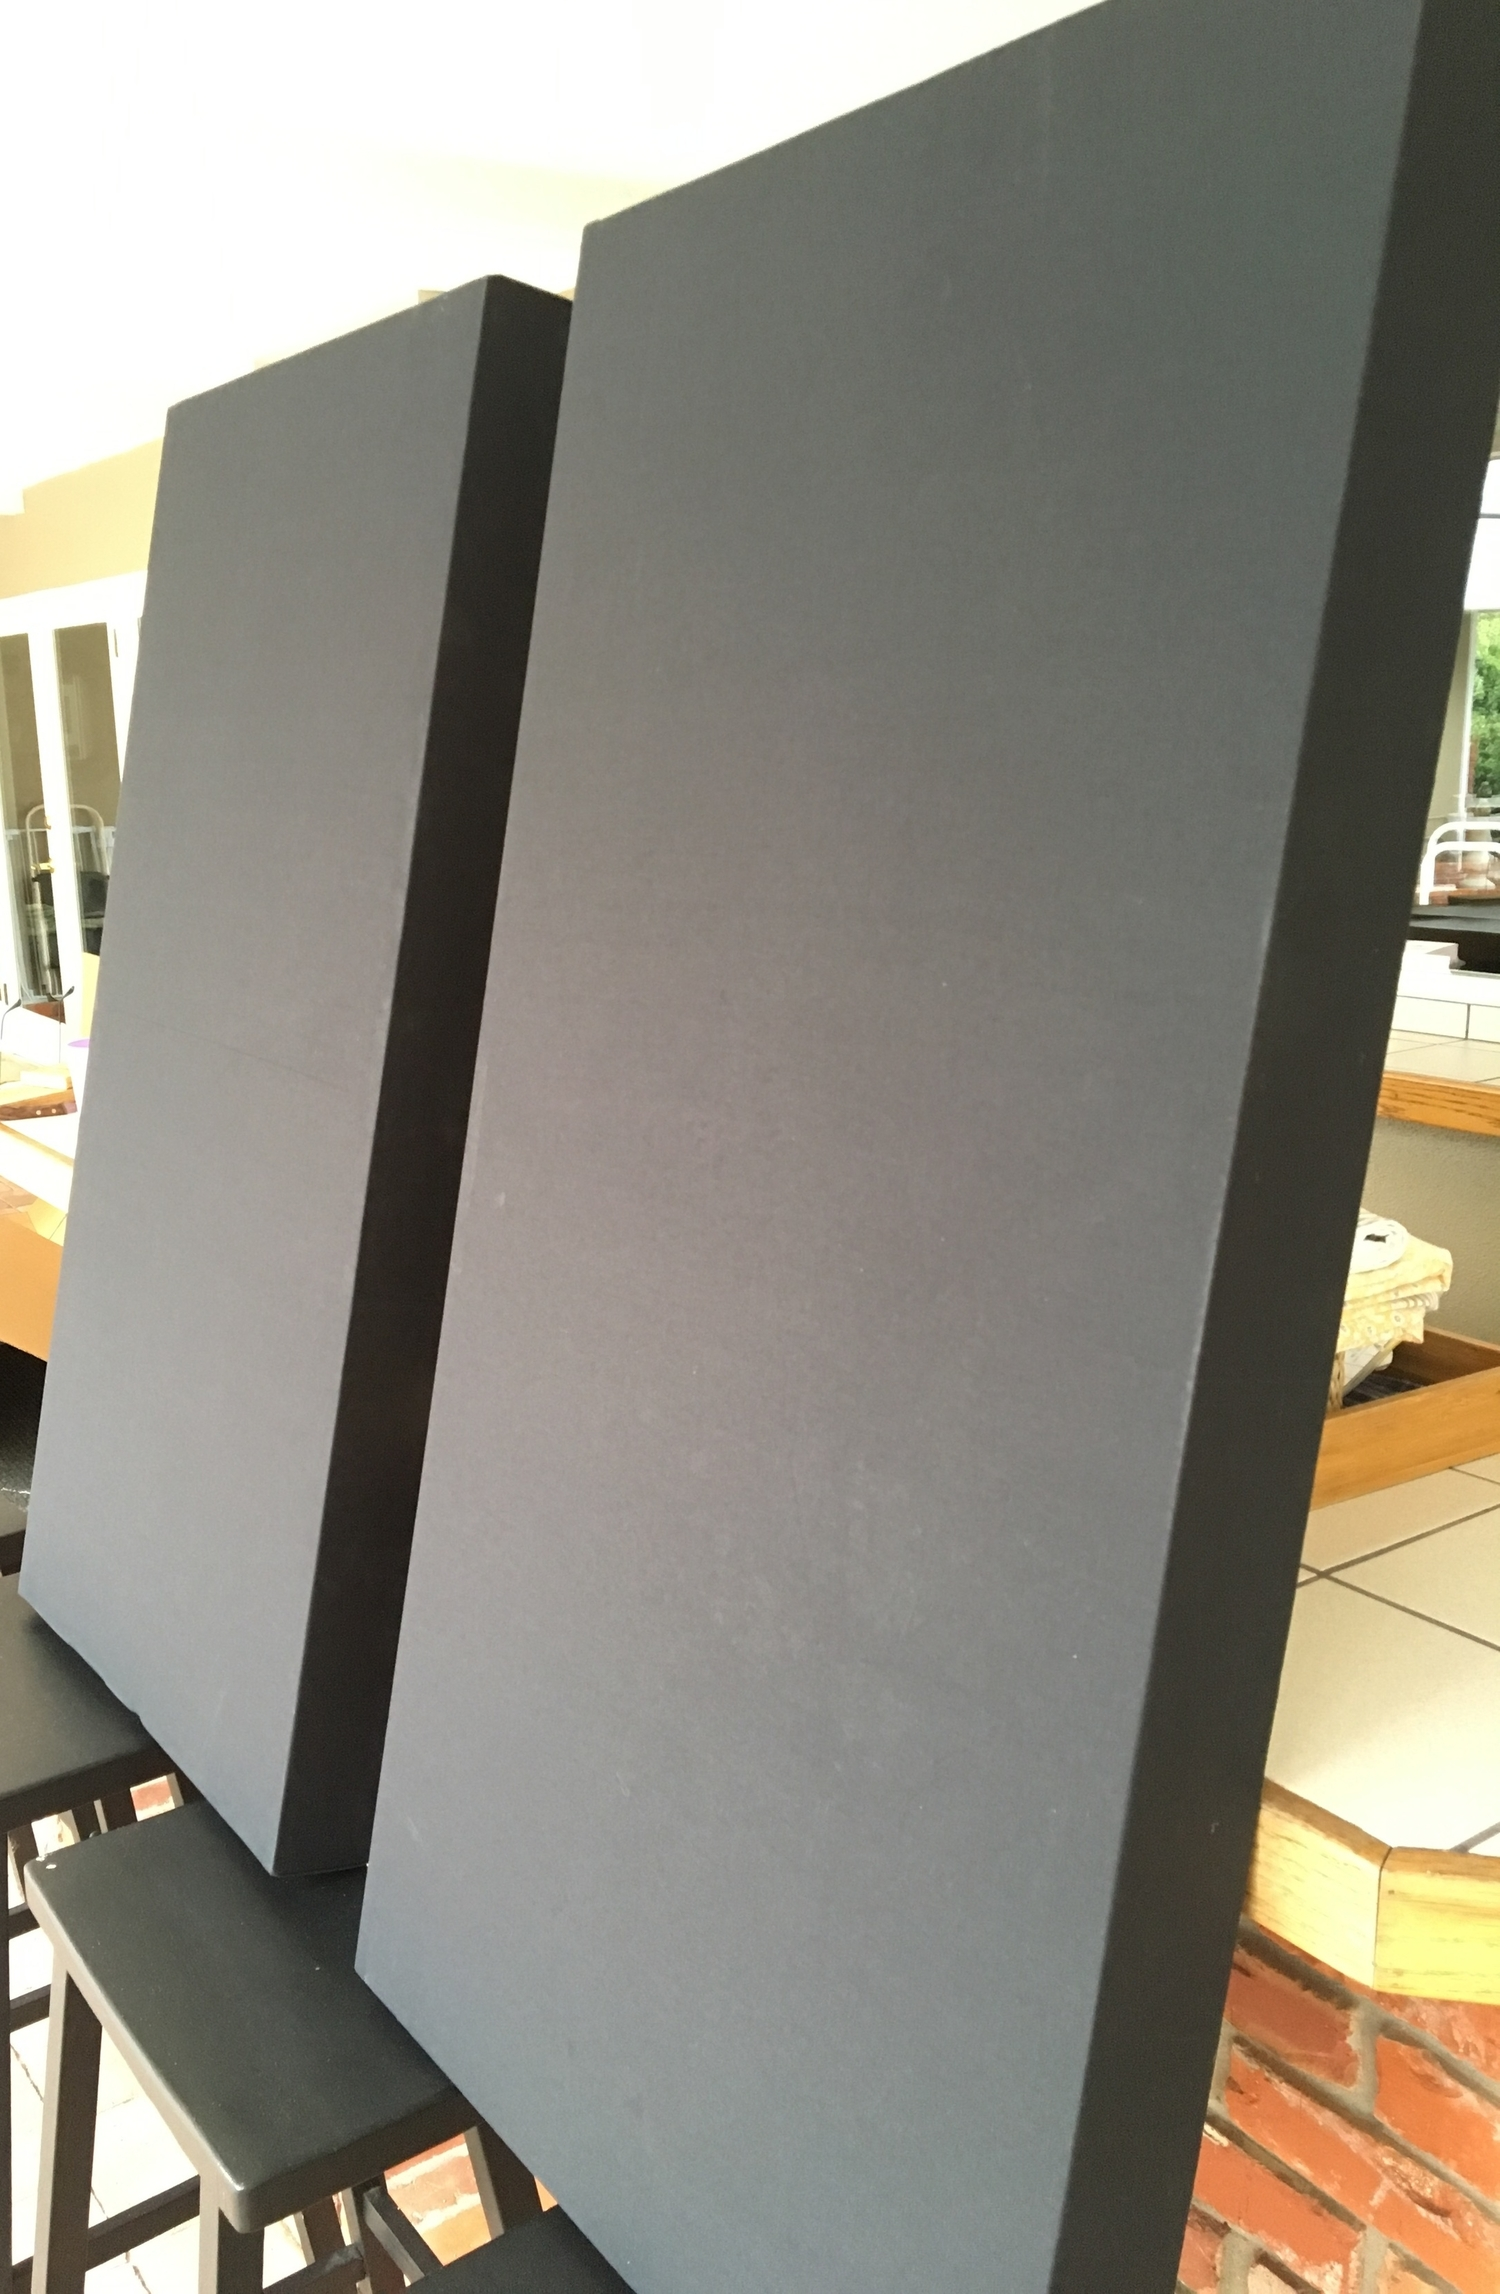 How To Build A Sound Absorbing Panel In